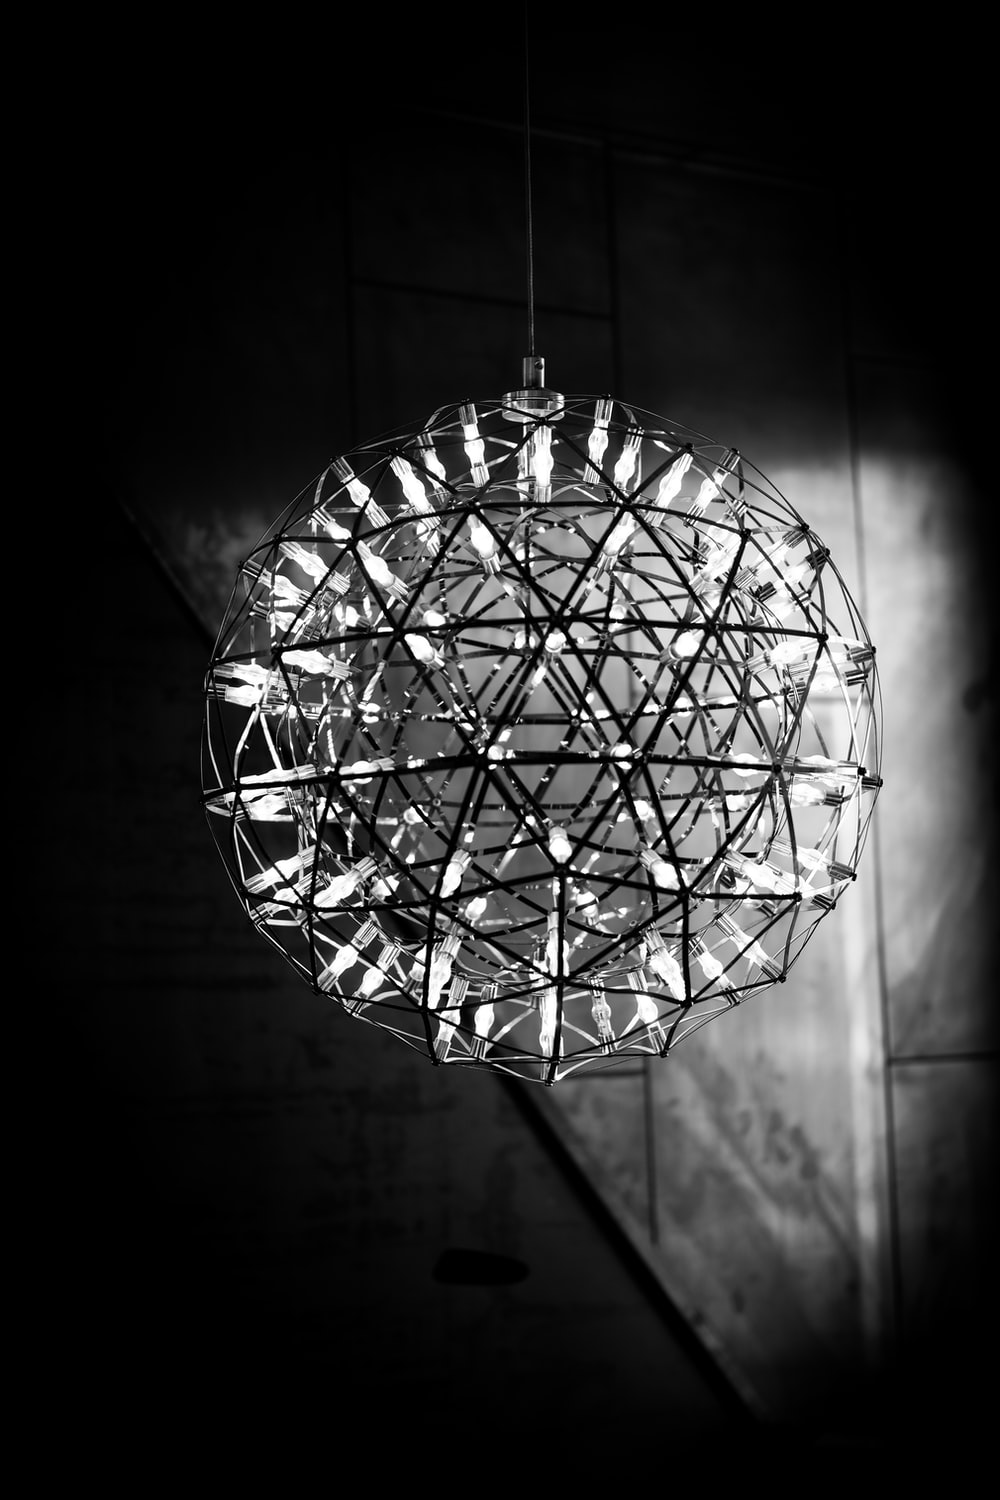 grayscale photo of round glass pendant lamp